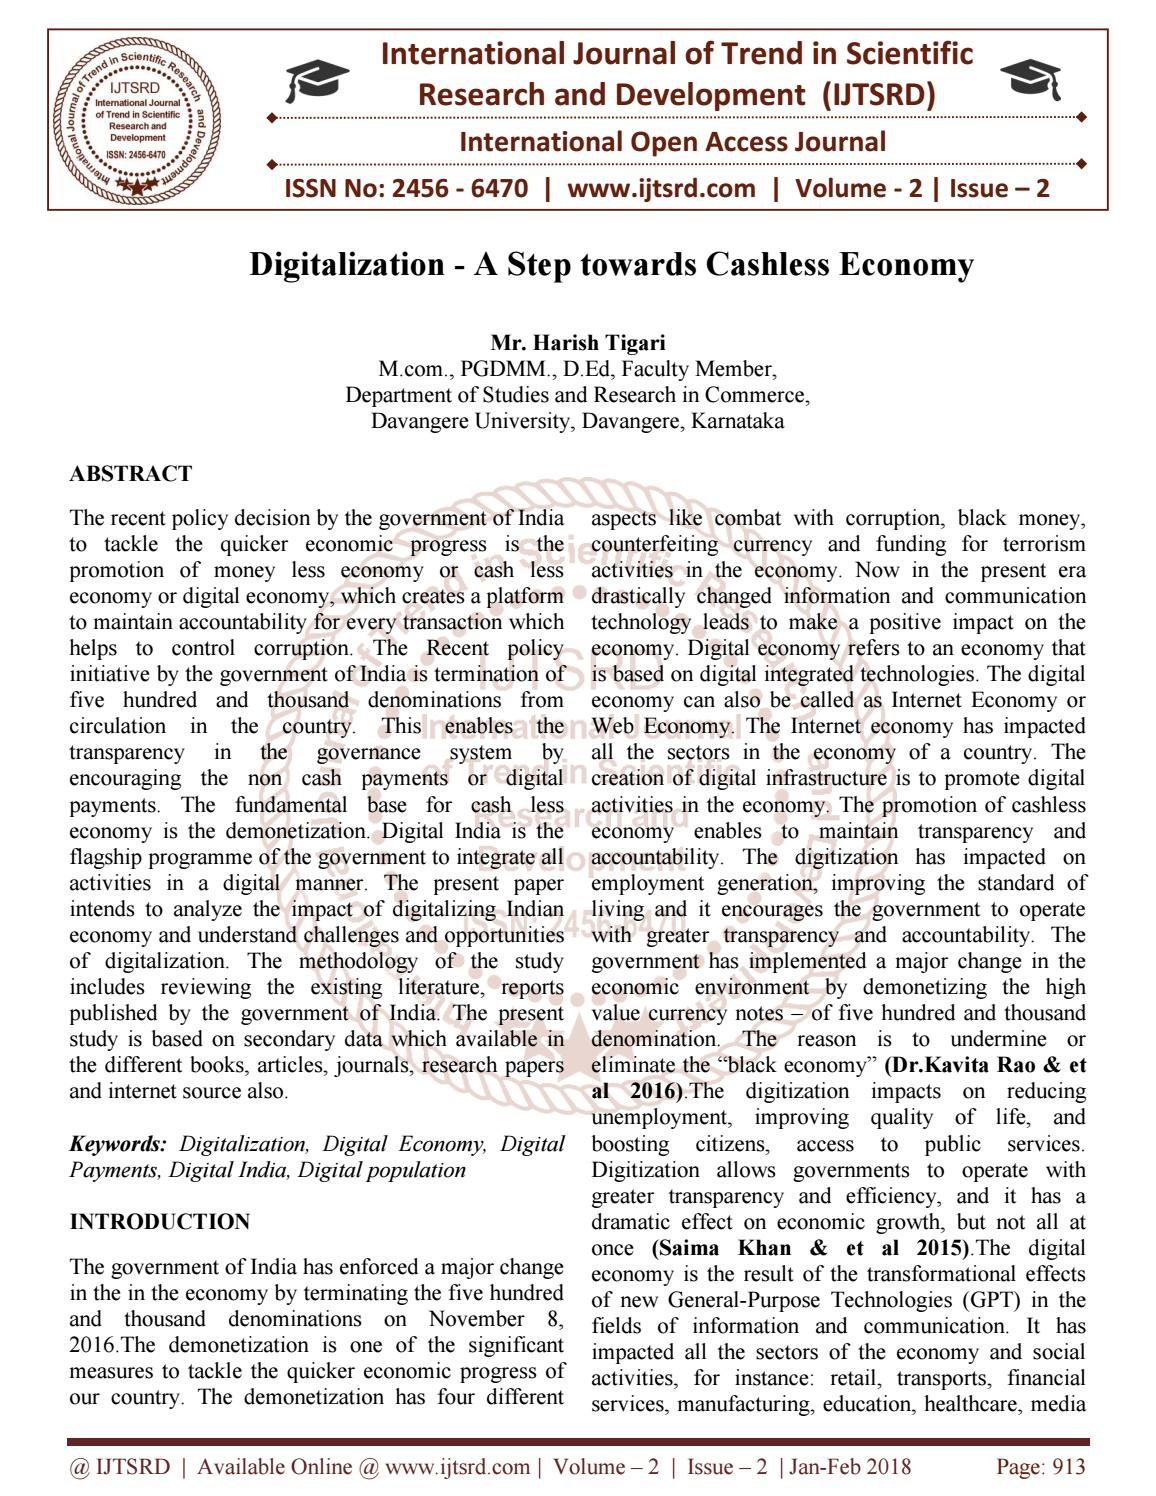 008 Cashless Economy Research Paper Page 1 Frightening Papers Pdf Cash To Full